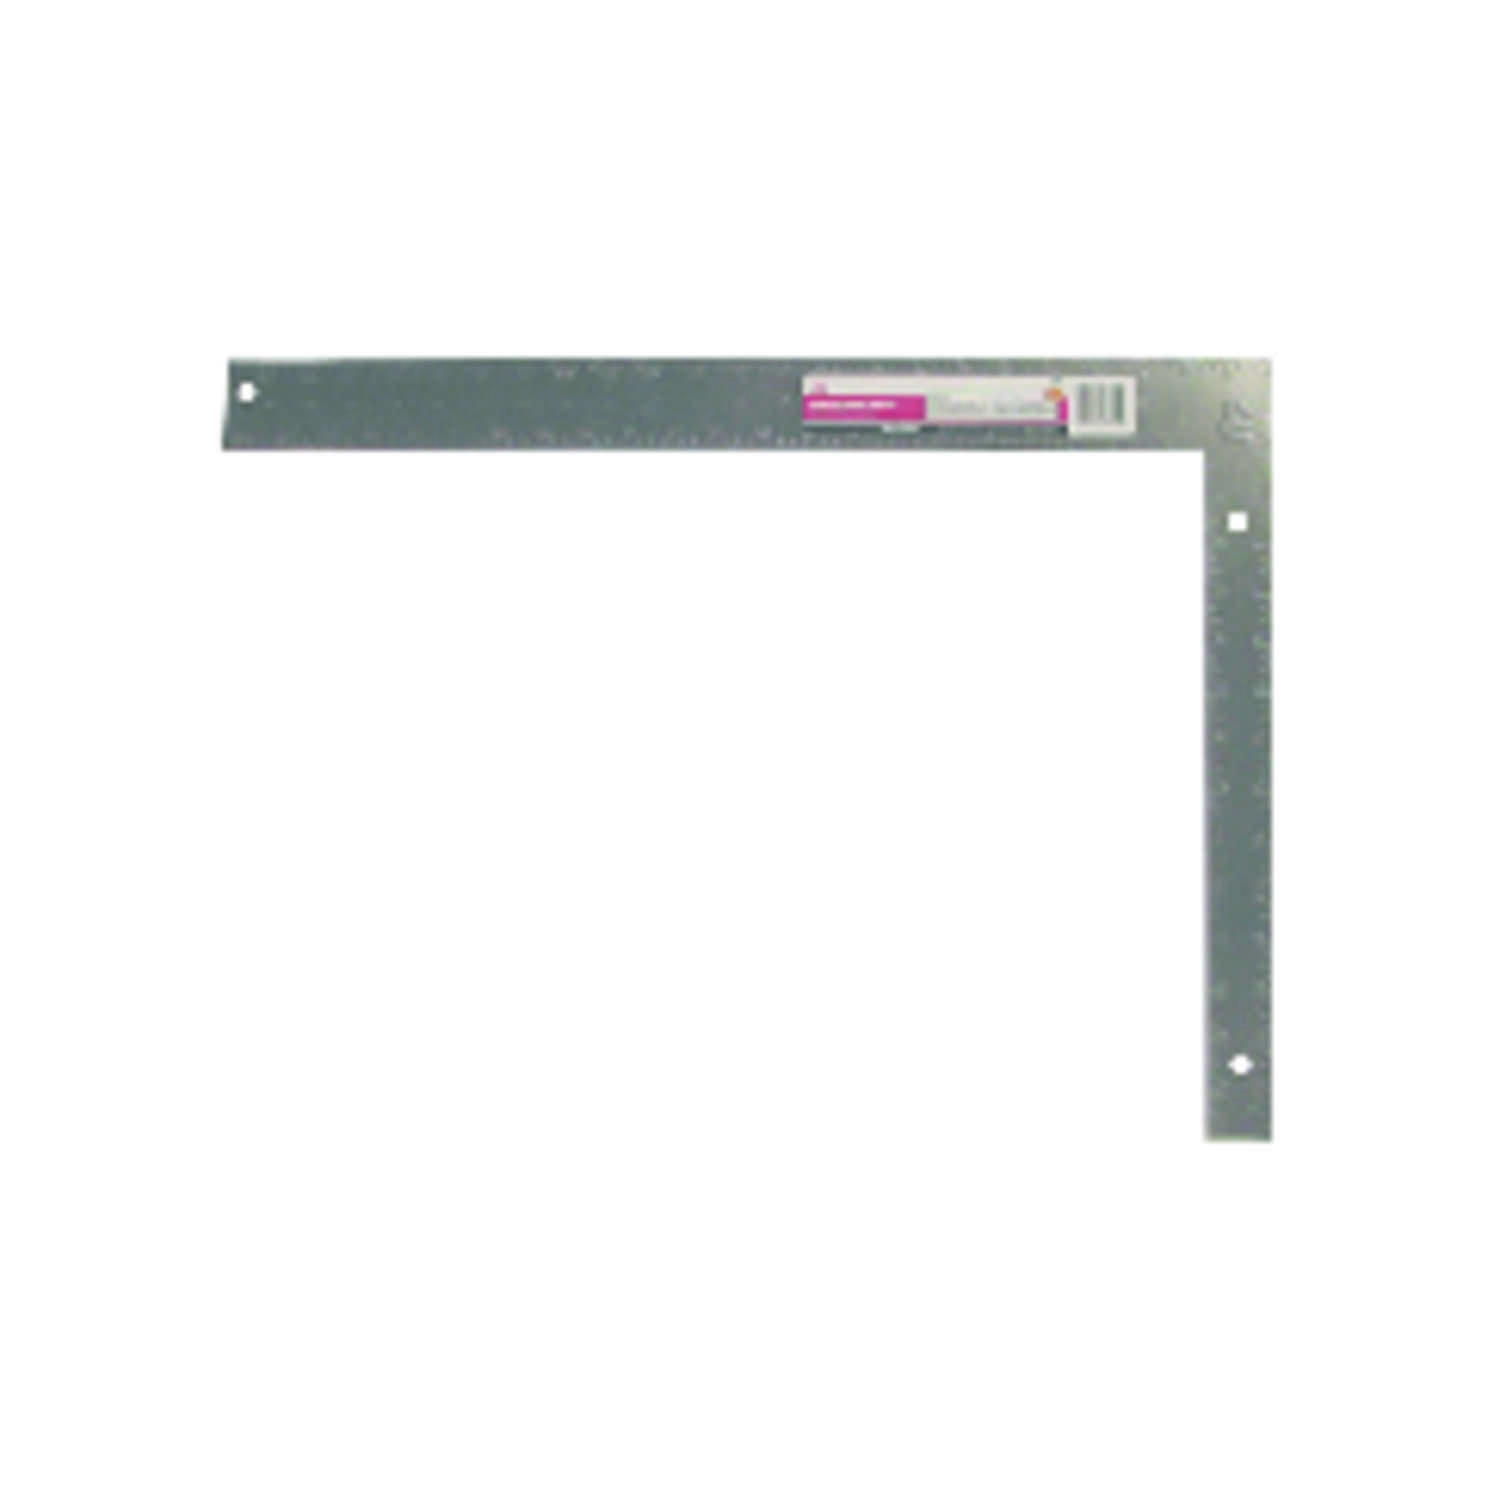 Ace  24 in. L x 16 in. H Steel  Framing Square  Silver